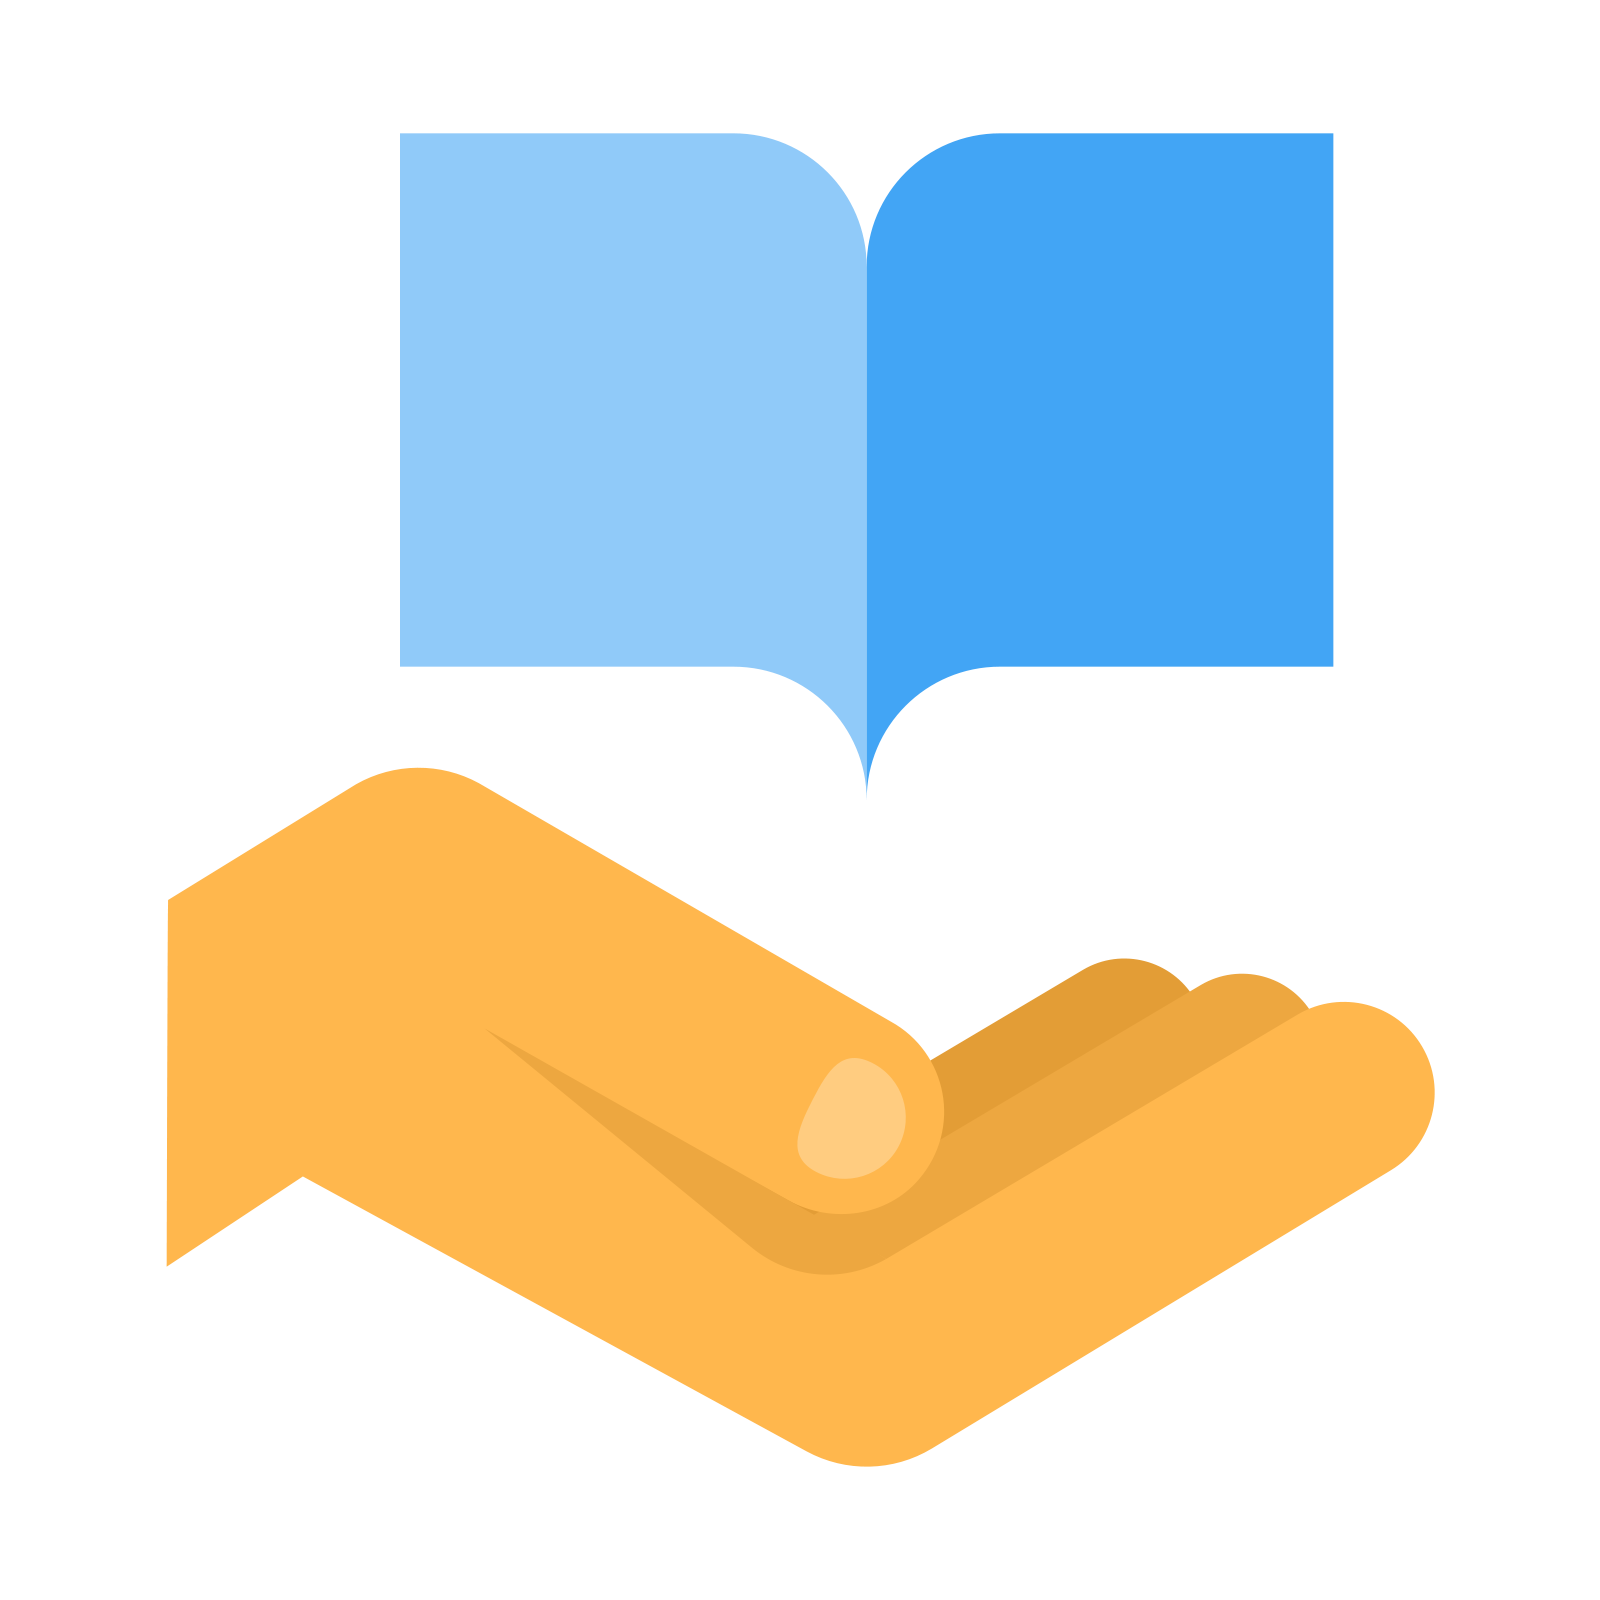 Knowledge Sharing icon - PNG Sharing